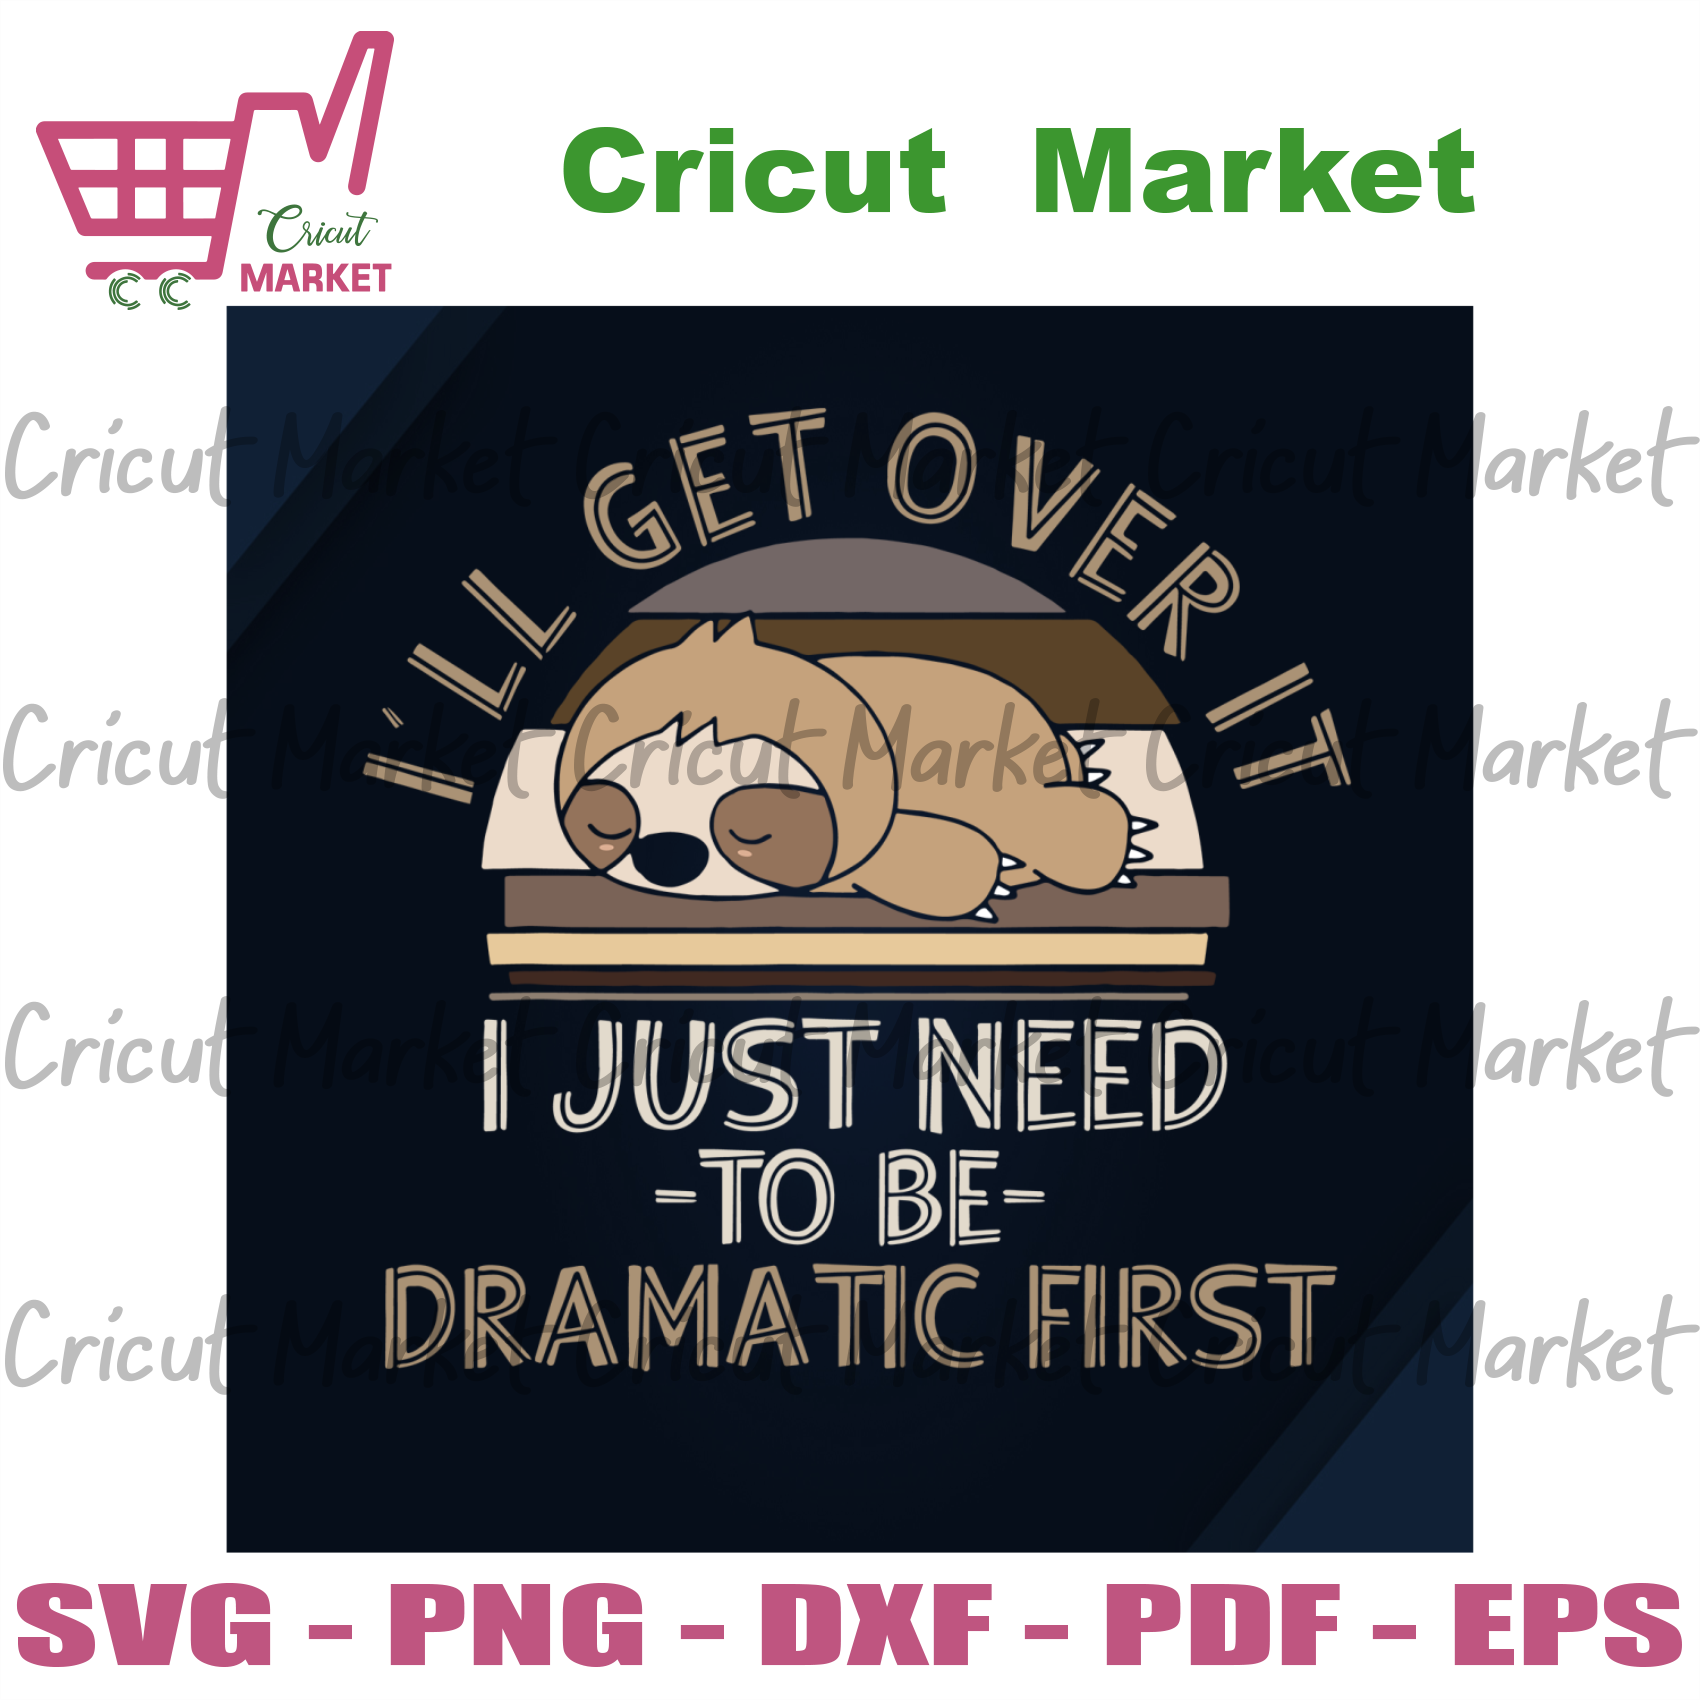 Ill Get Over It, Trending Svg, Trending Now, Trending, Sloth Svg, loth Gift, Sloth Shirt, Sloth Clipart, Sloth Lover Gift, Sloth Owner Svg,Sloth Silhouette, Love Sloth Gift, Funny Sloth, Slot